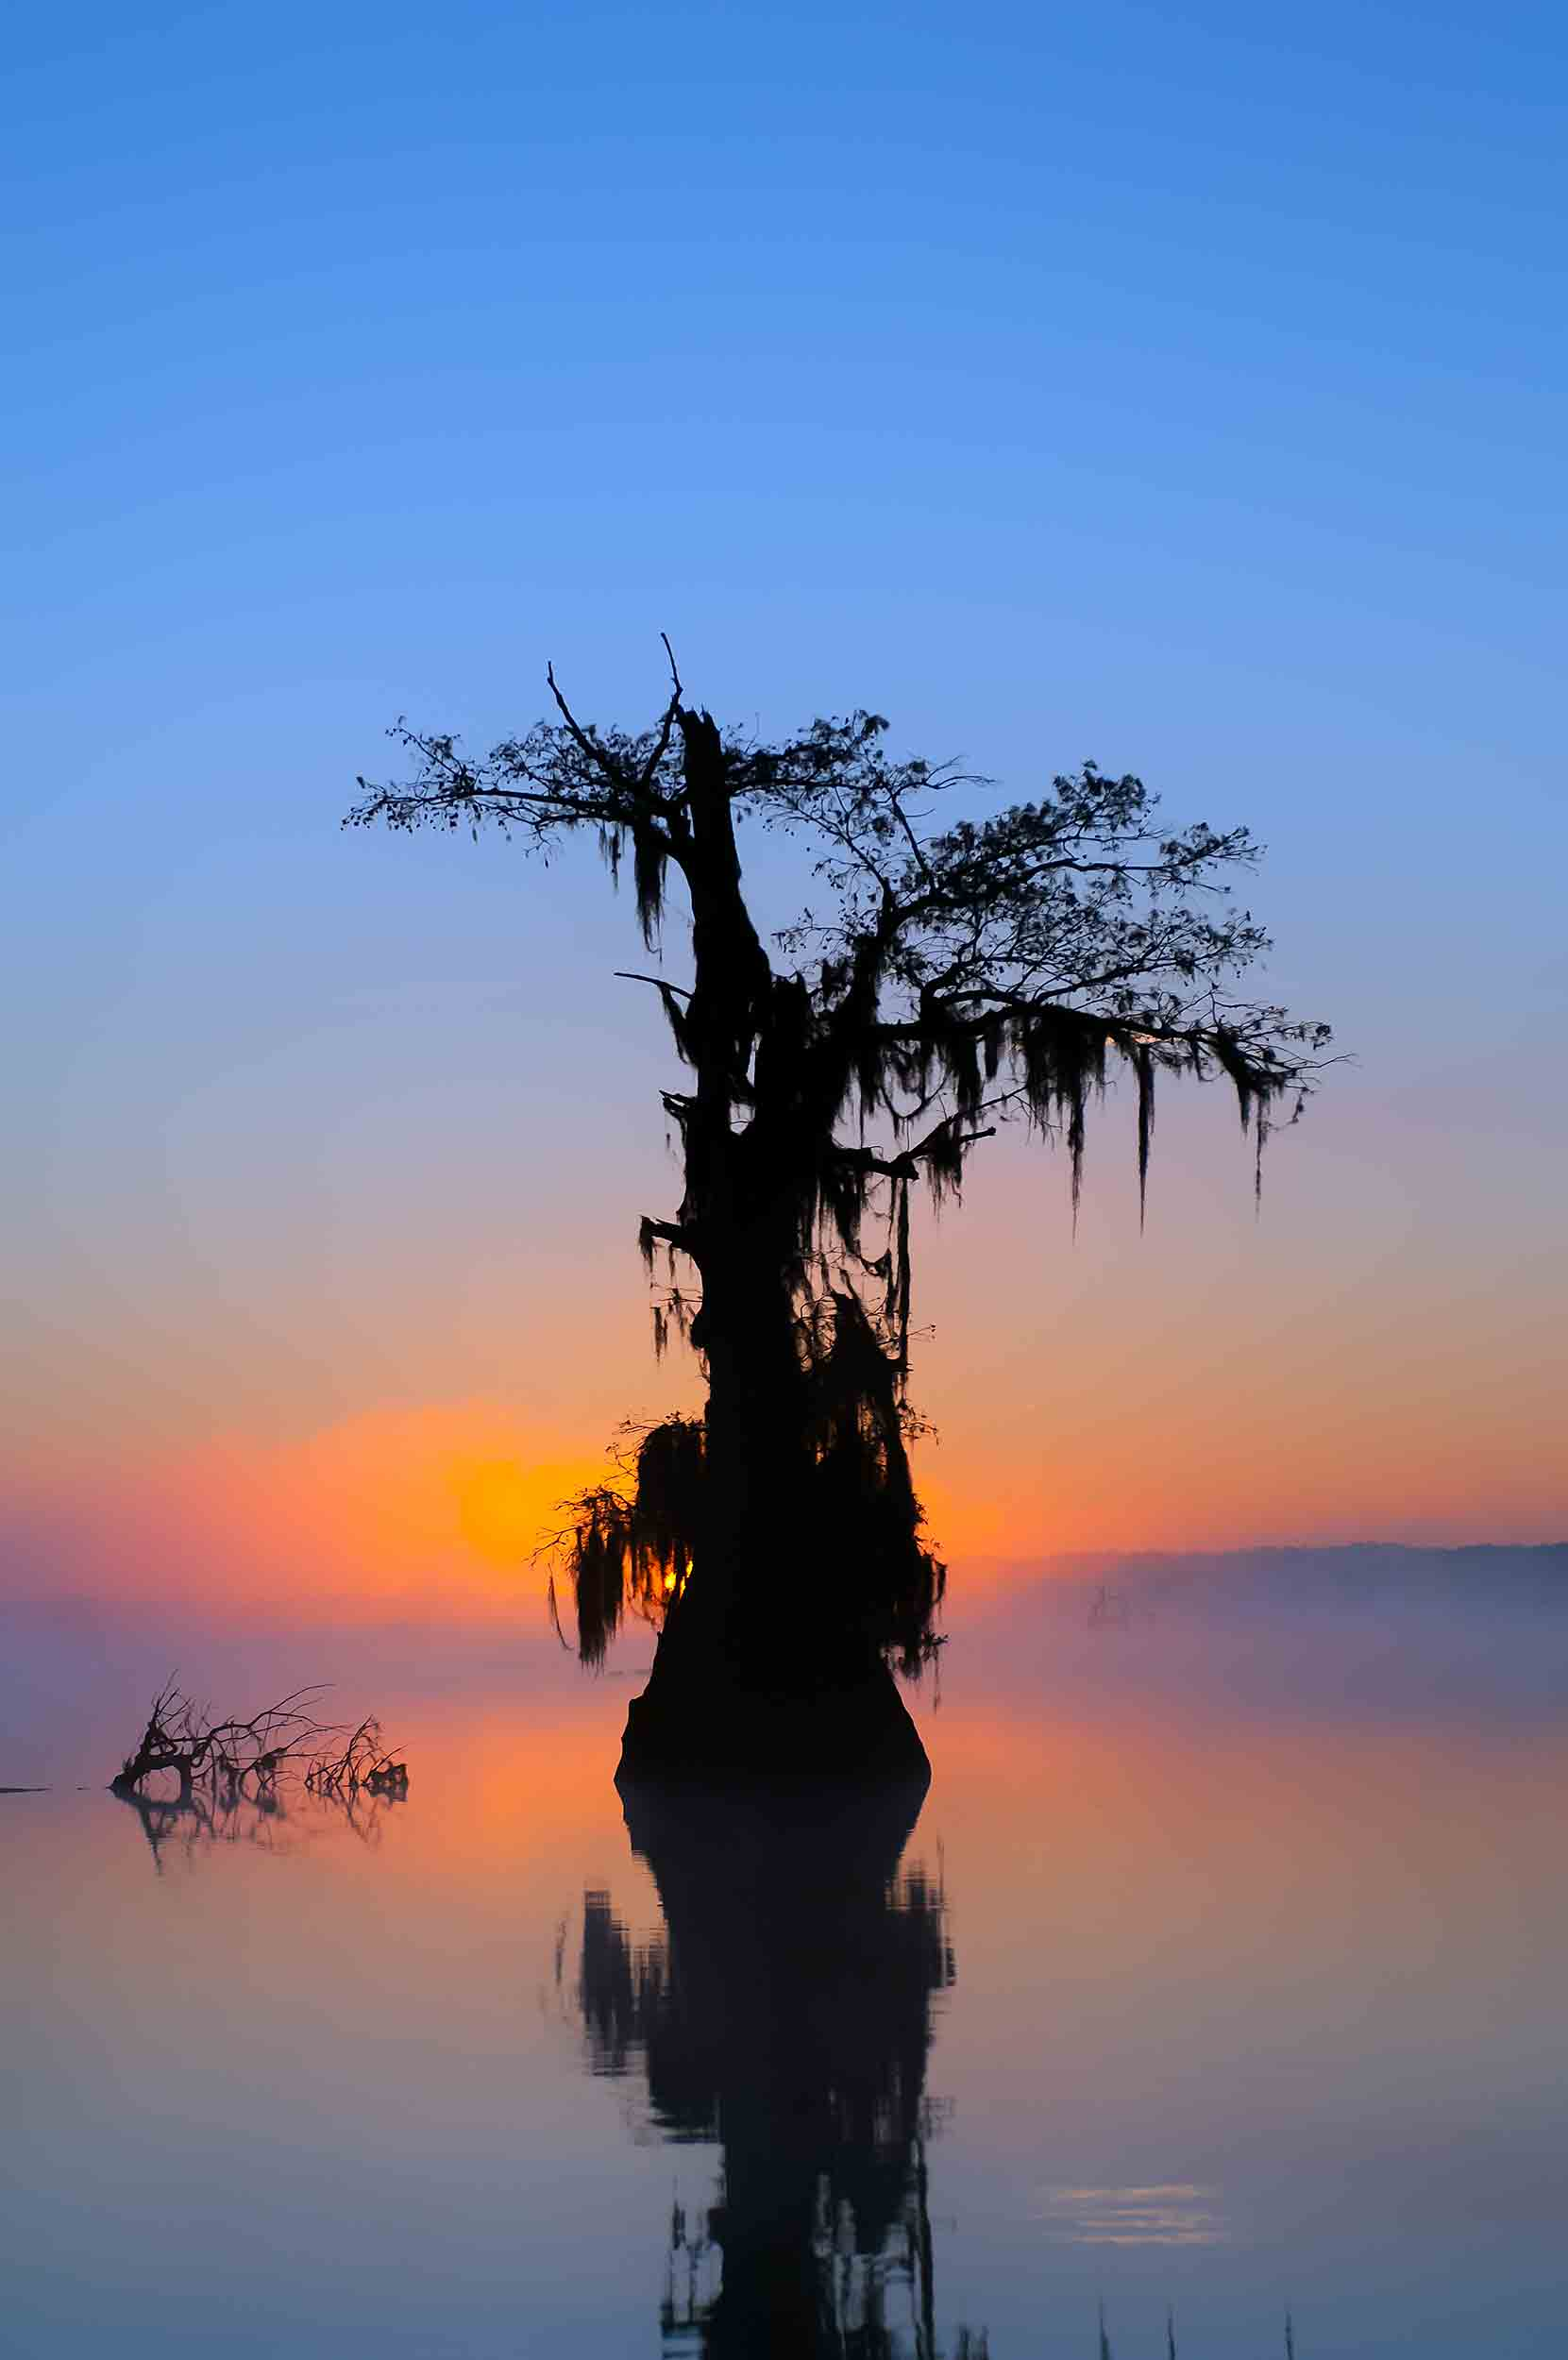 Cypress Tree at Sunrise - Lake Deauterive